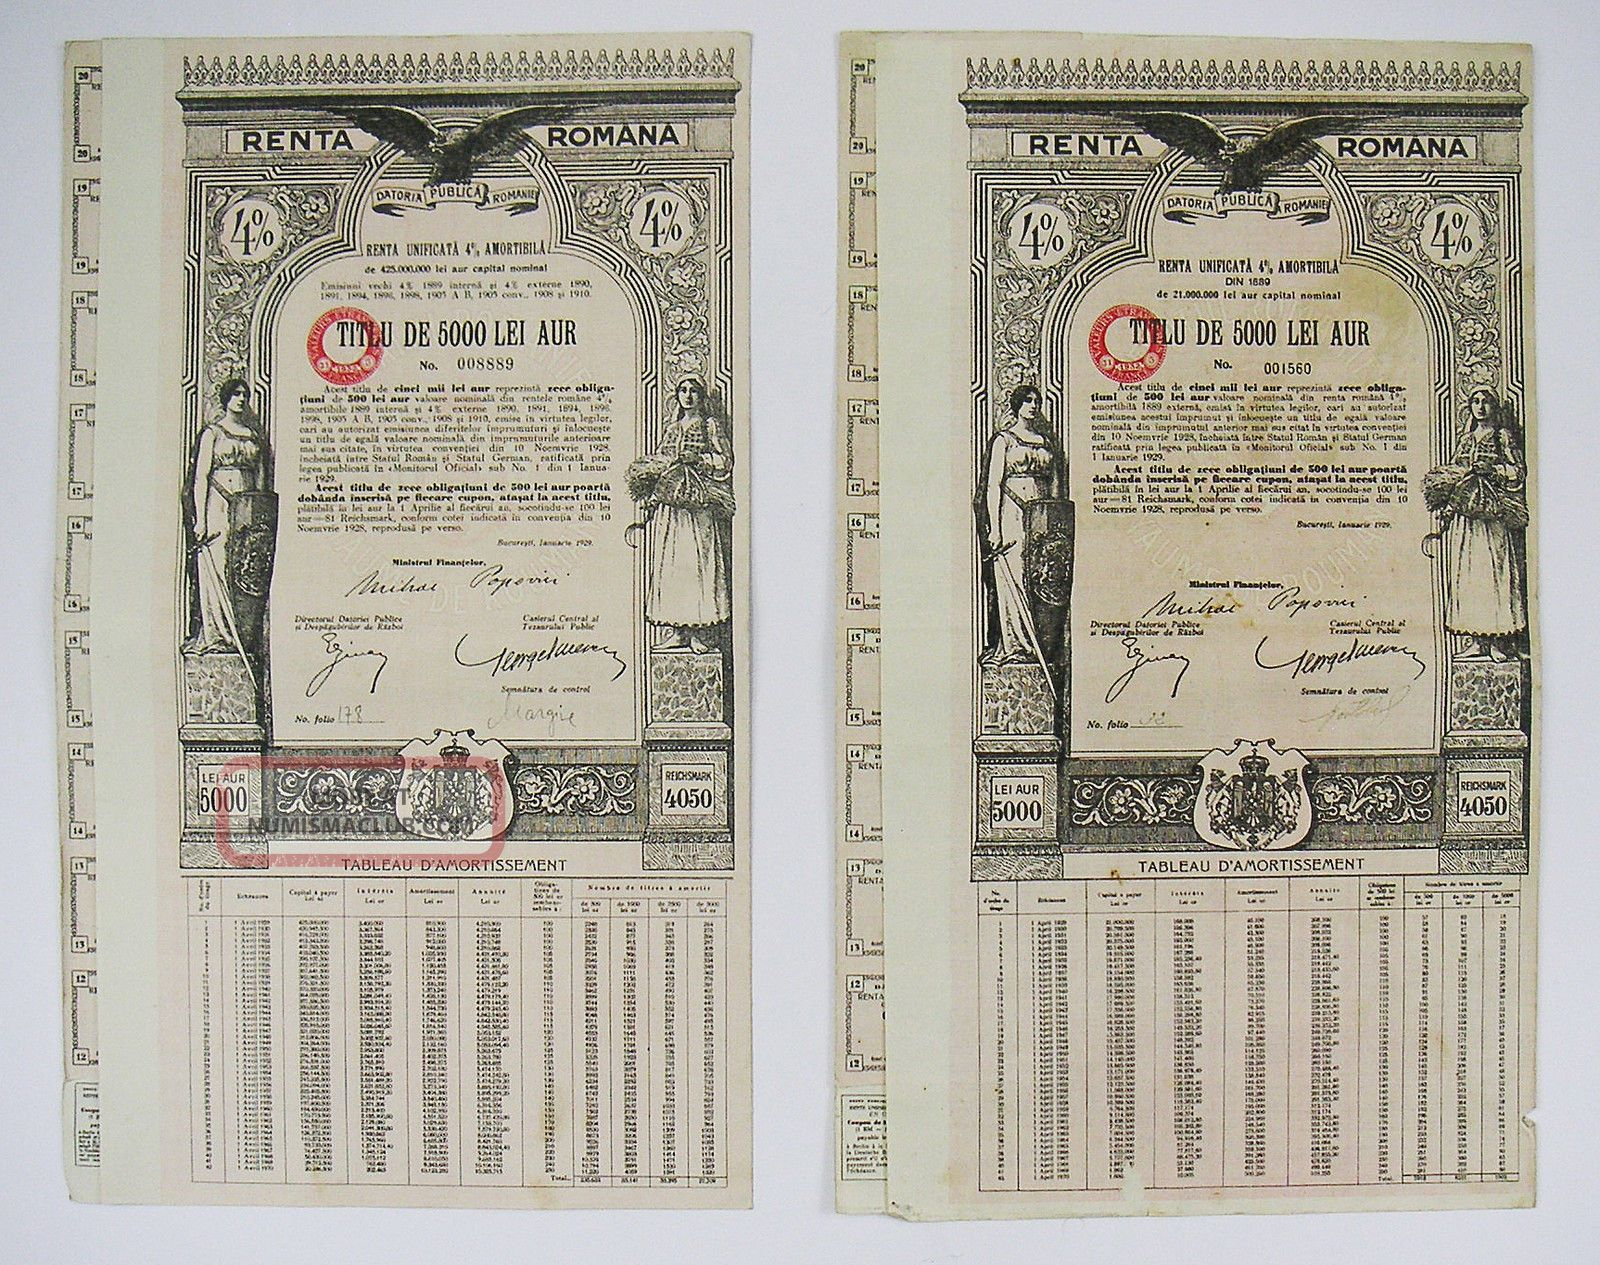 Romana - Renta Romana 4 - Titlu De 5000 Lei Aur 1929 (x2) Stocks & Bonds, Scripophily photo